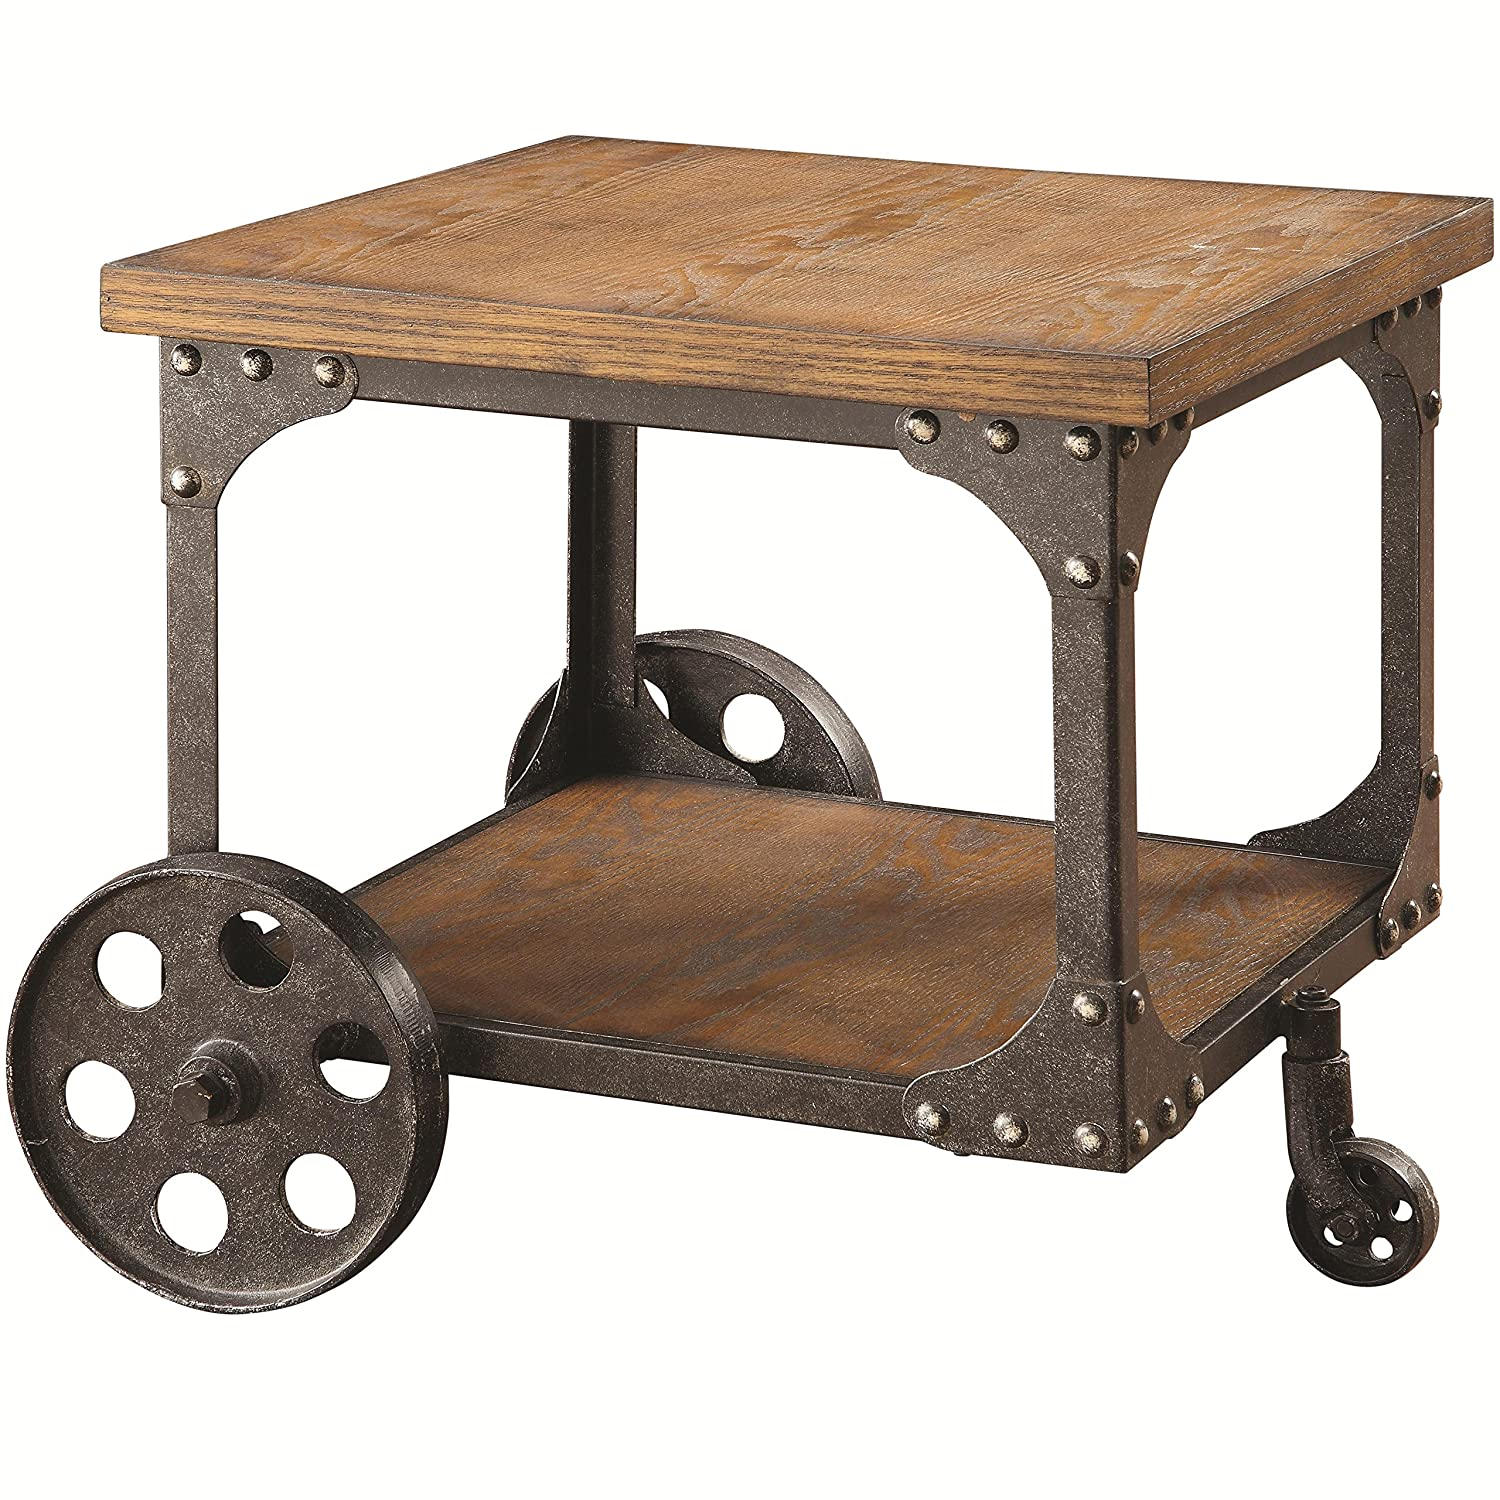 Charming Amazon.com: Coaster 701127 Home Furnishings End Table, Rustic Brown:  Kitchen U0026 Dining